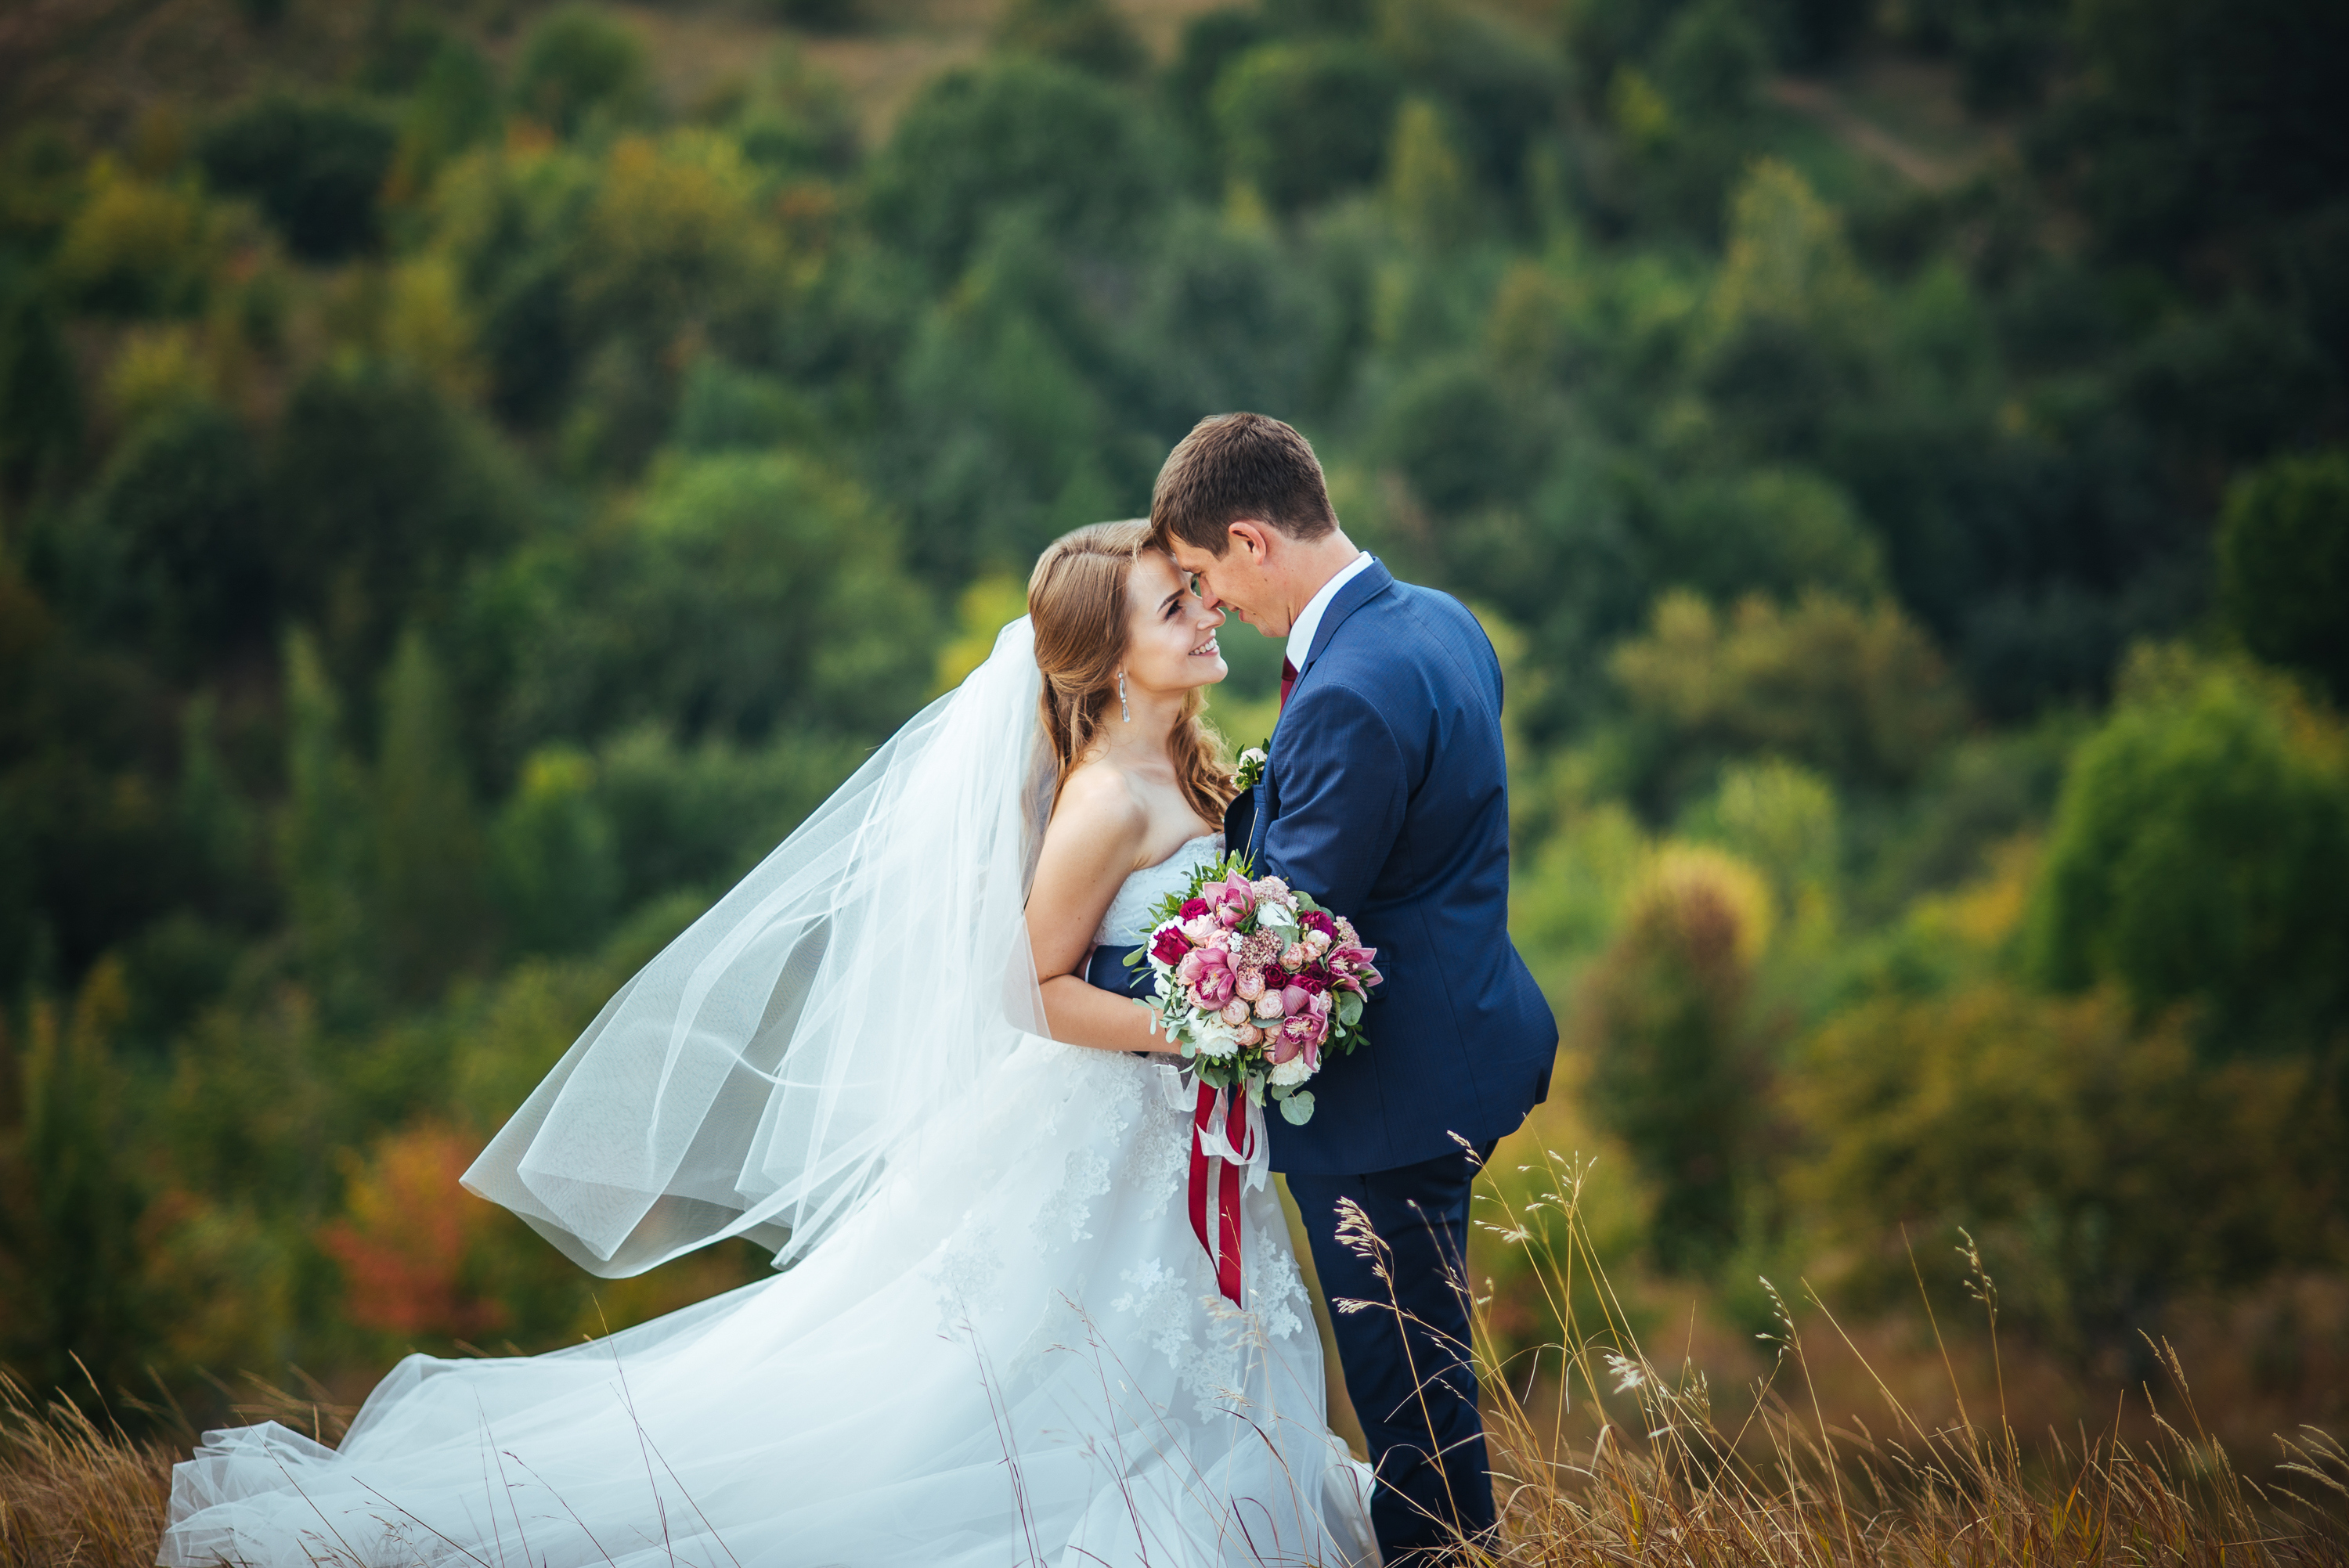 8 Secrets to an Affordable Destination Wedding - NerdWallet